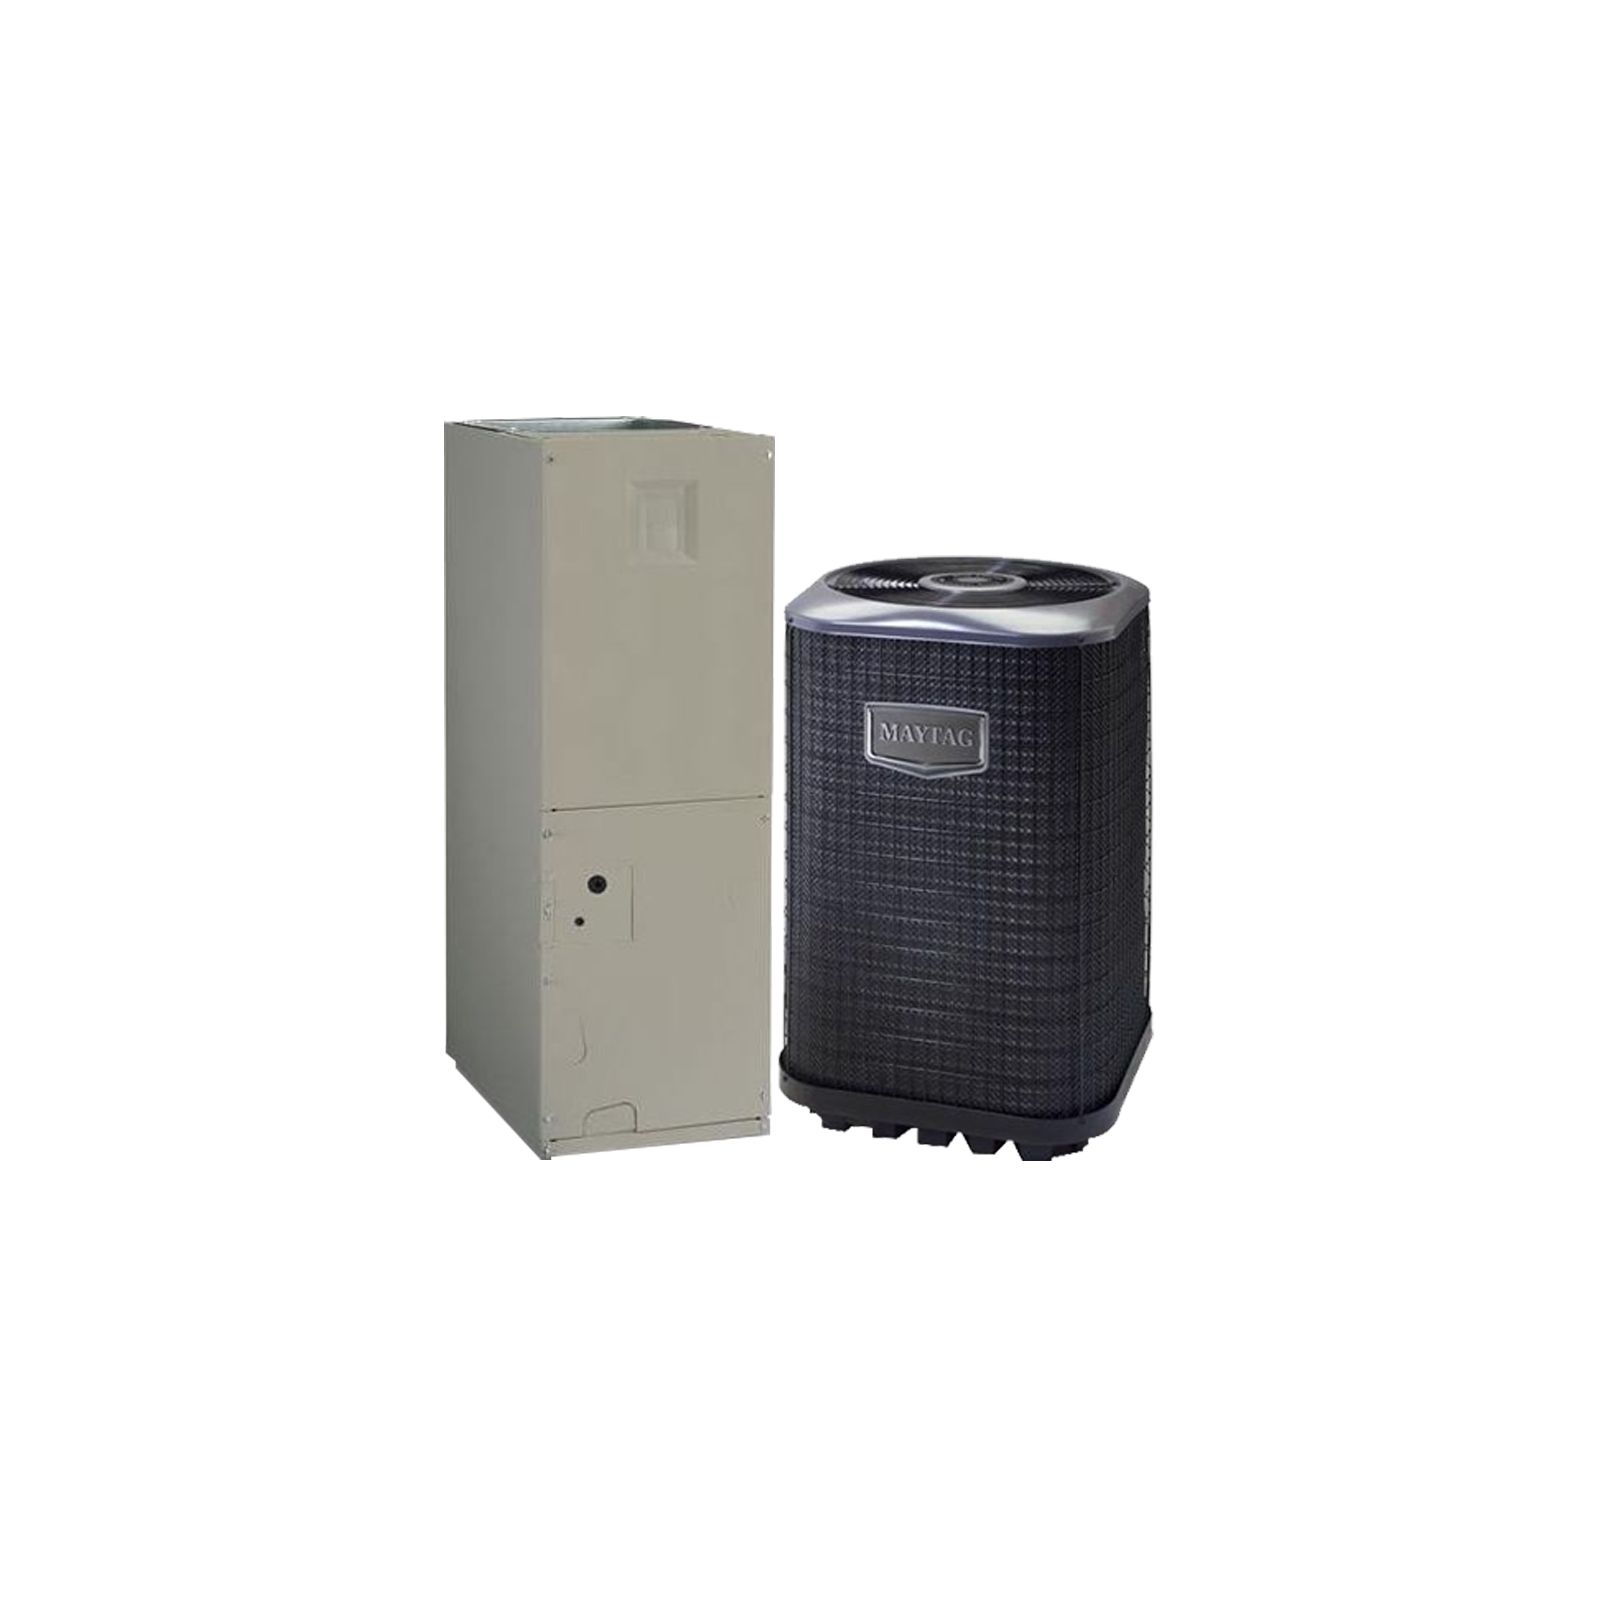 Maytag (AHRI 5561802) MSA6BF Series 2 1/2 Ton 16 SEER, Air Conditioner System